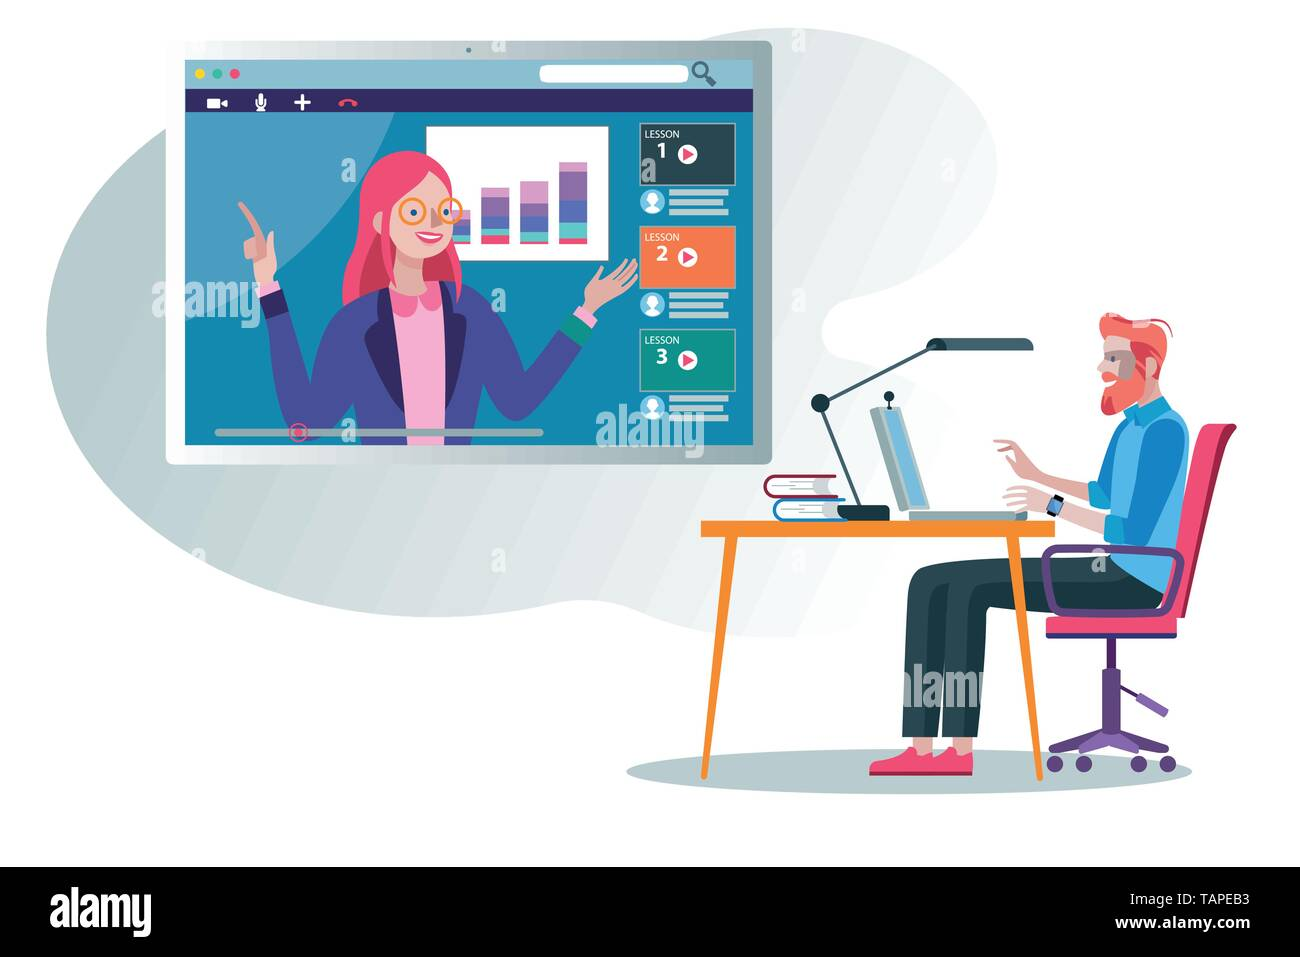 A business Man following an online education and e-learning course through his laptop computer with a online professional teacher. Flat design illustr - Stock Image